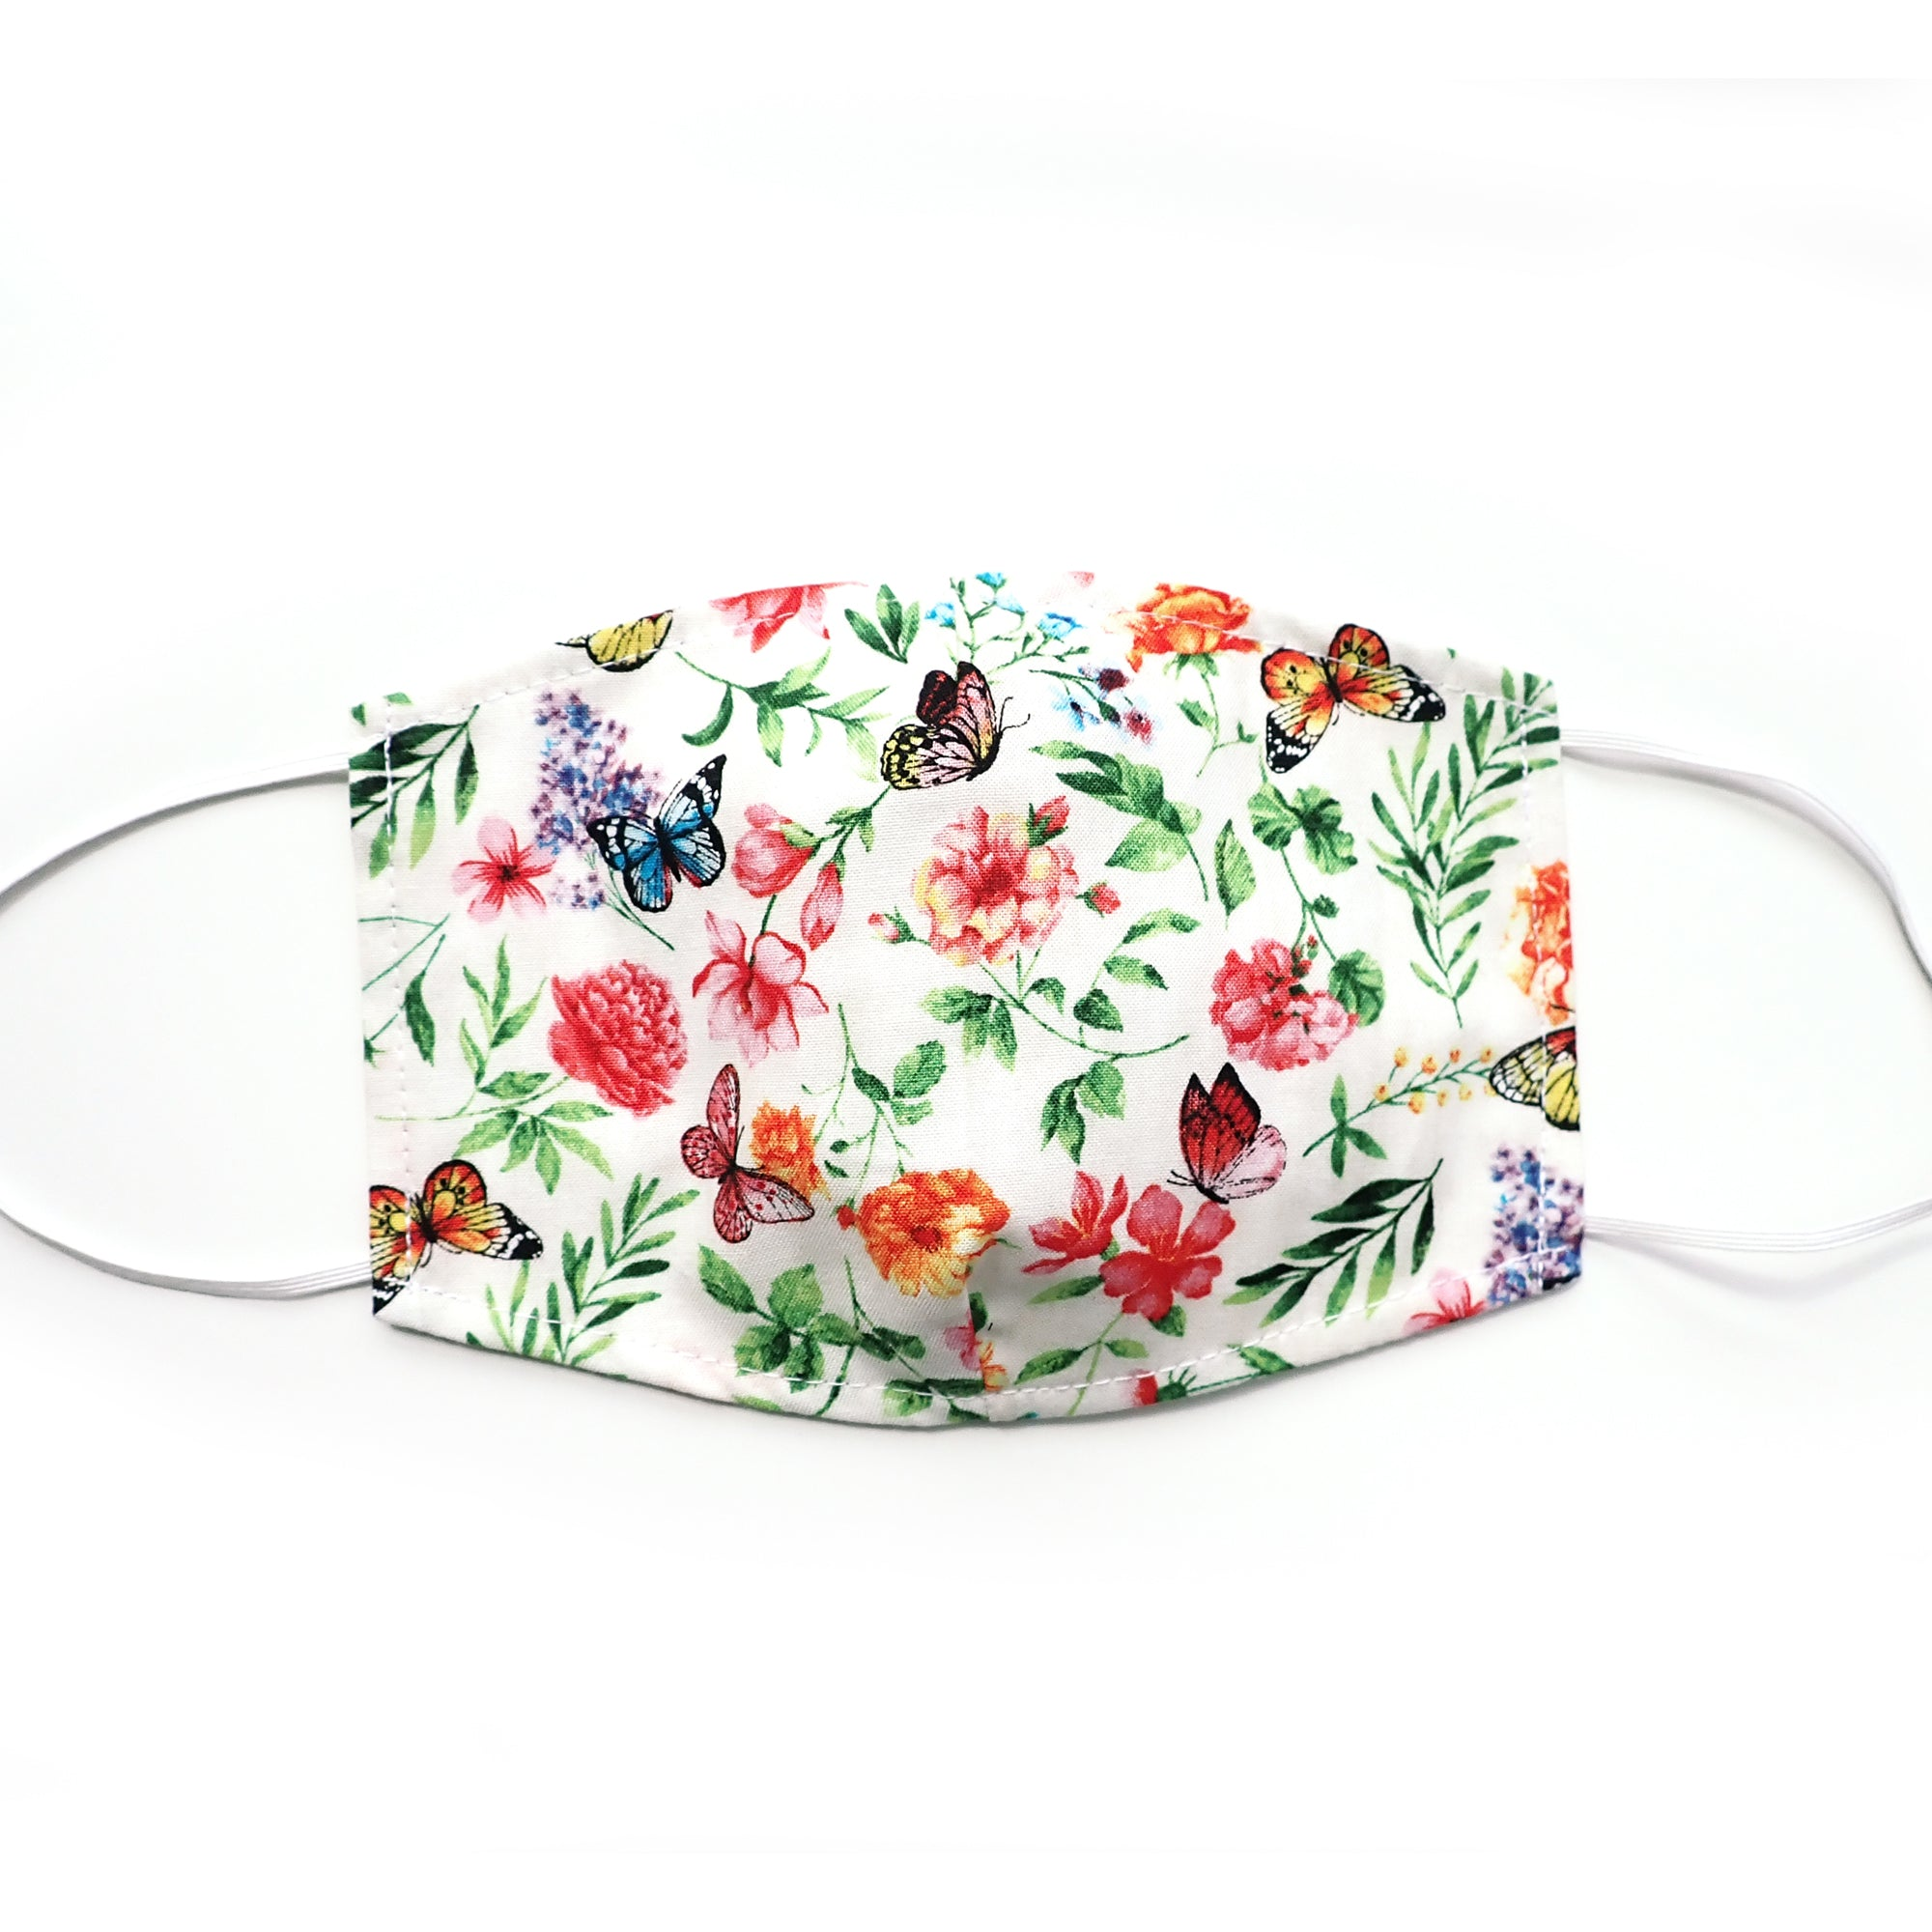 White Butterfly Floral, 100% Cotton Face Mask, adjustable w/ nose wire & pocket